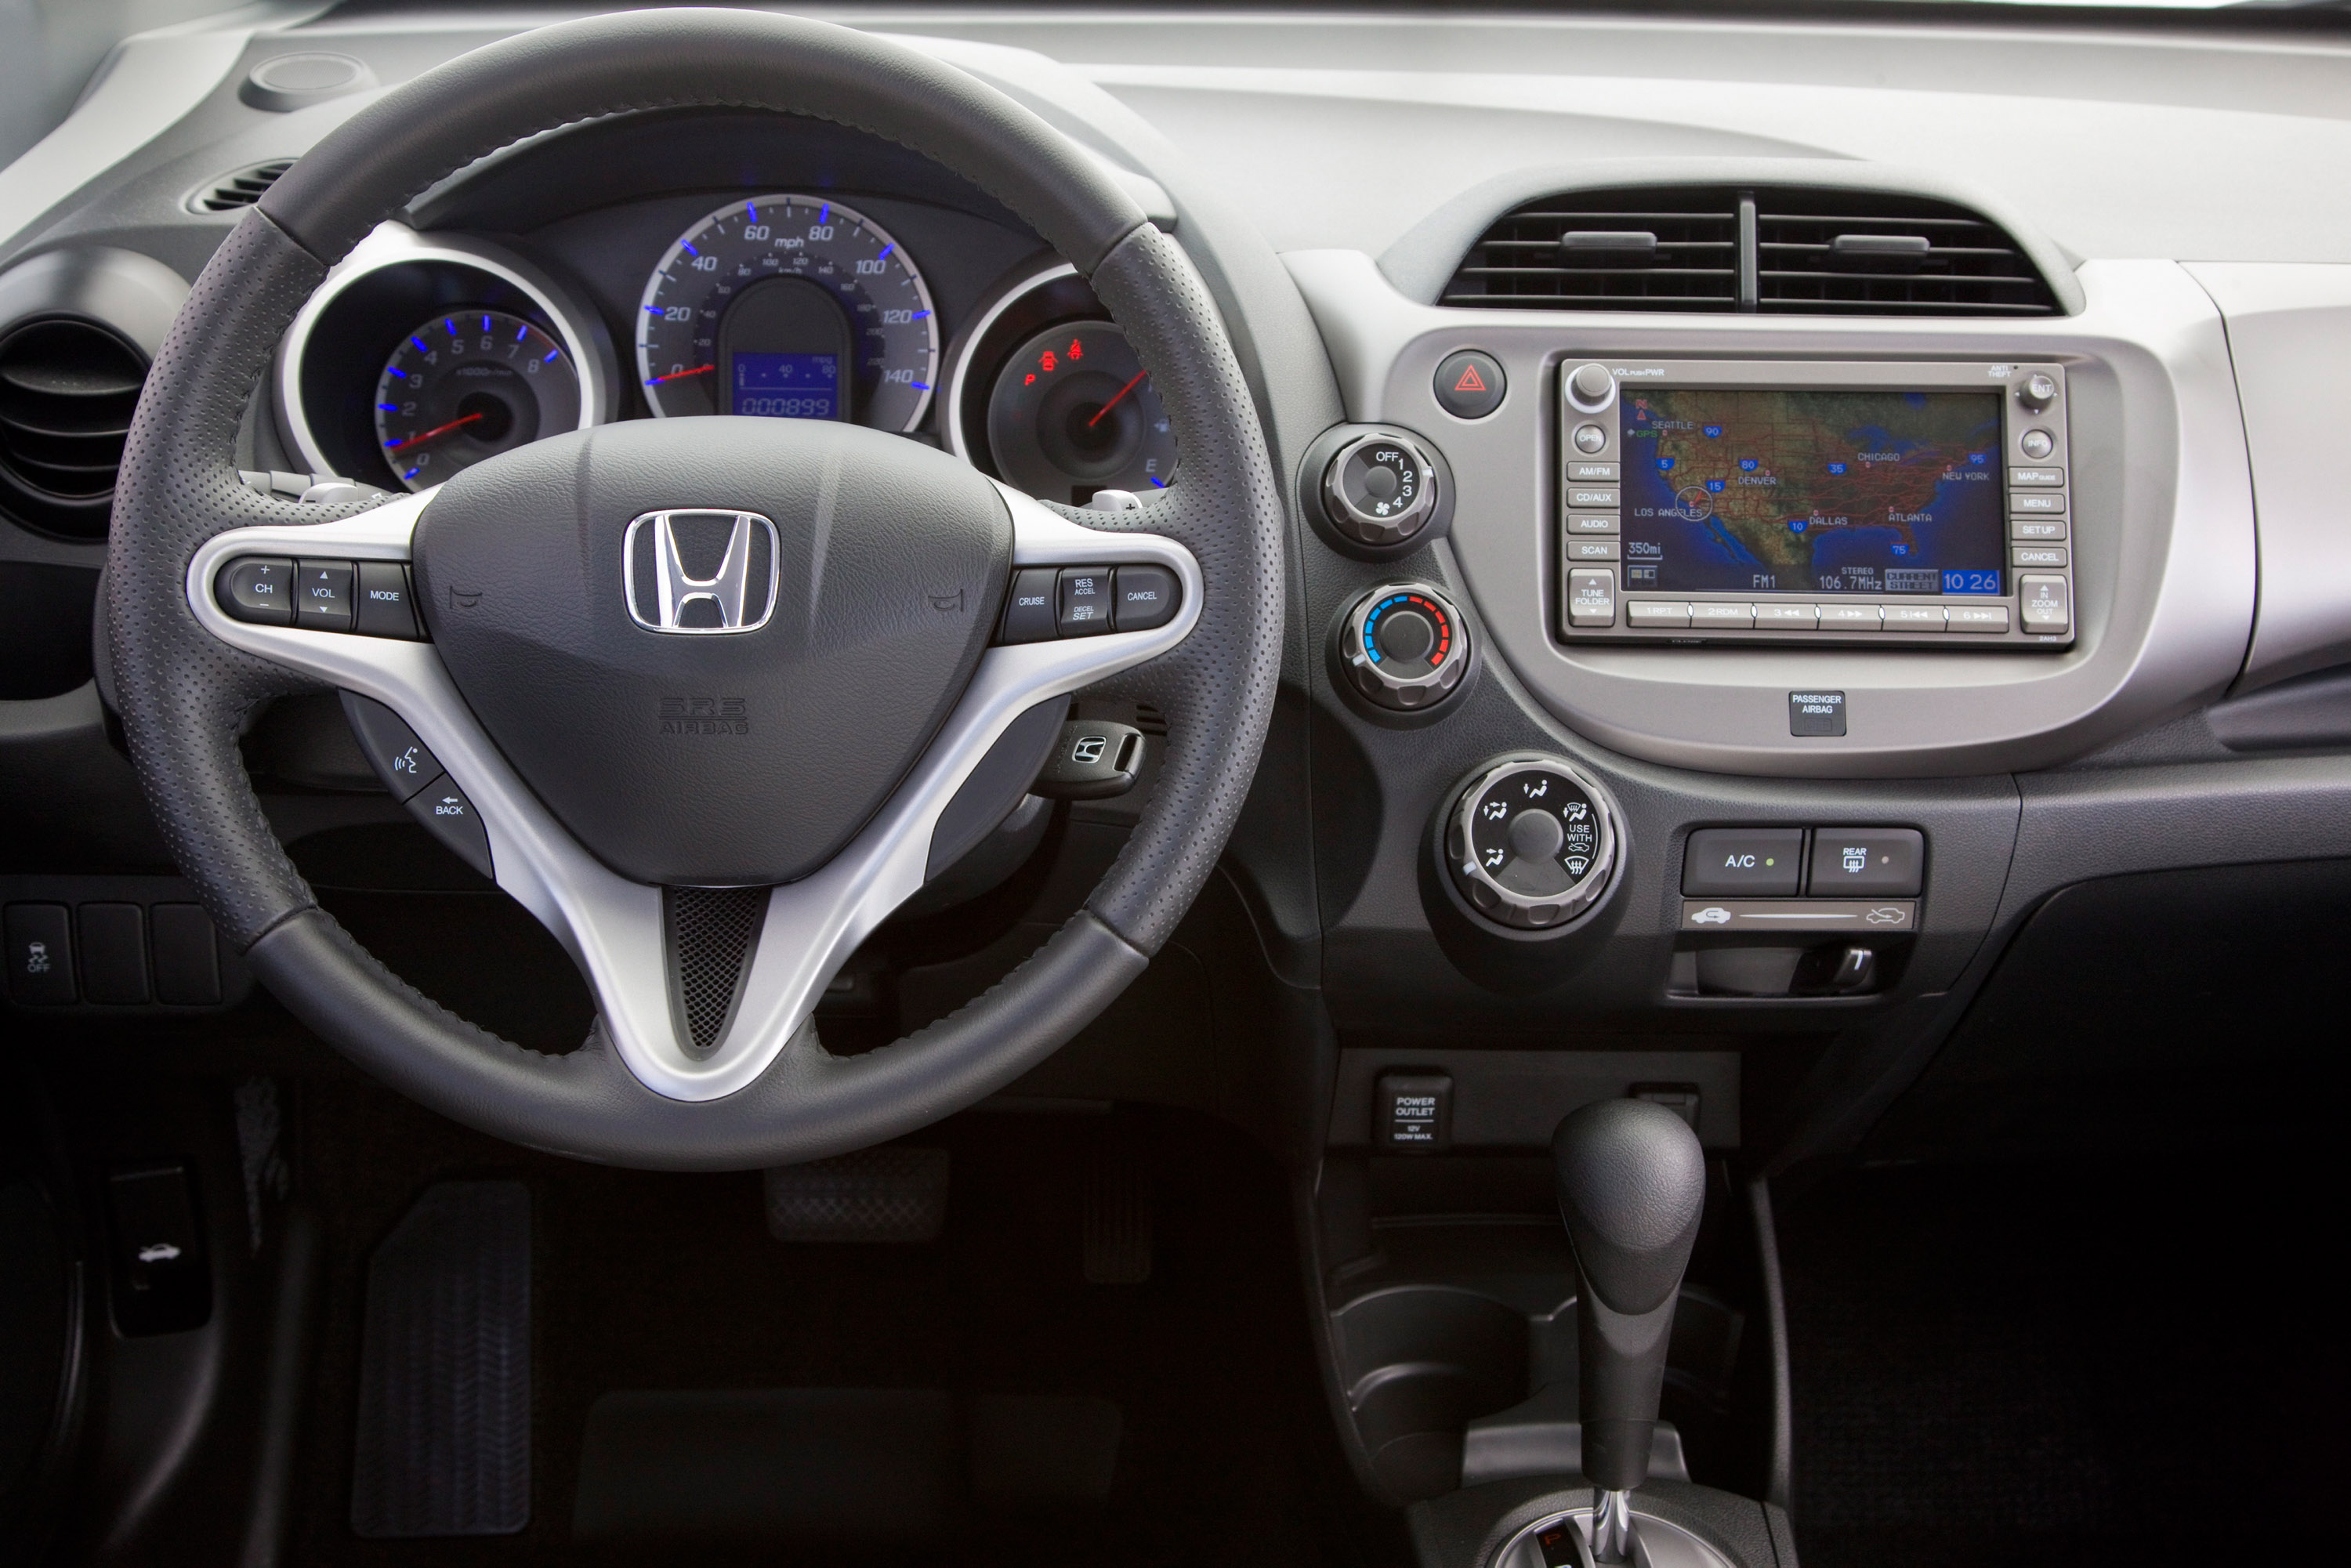 2010 Honda Fit Picture 24730